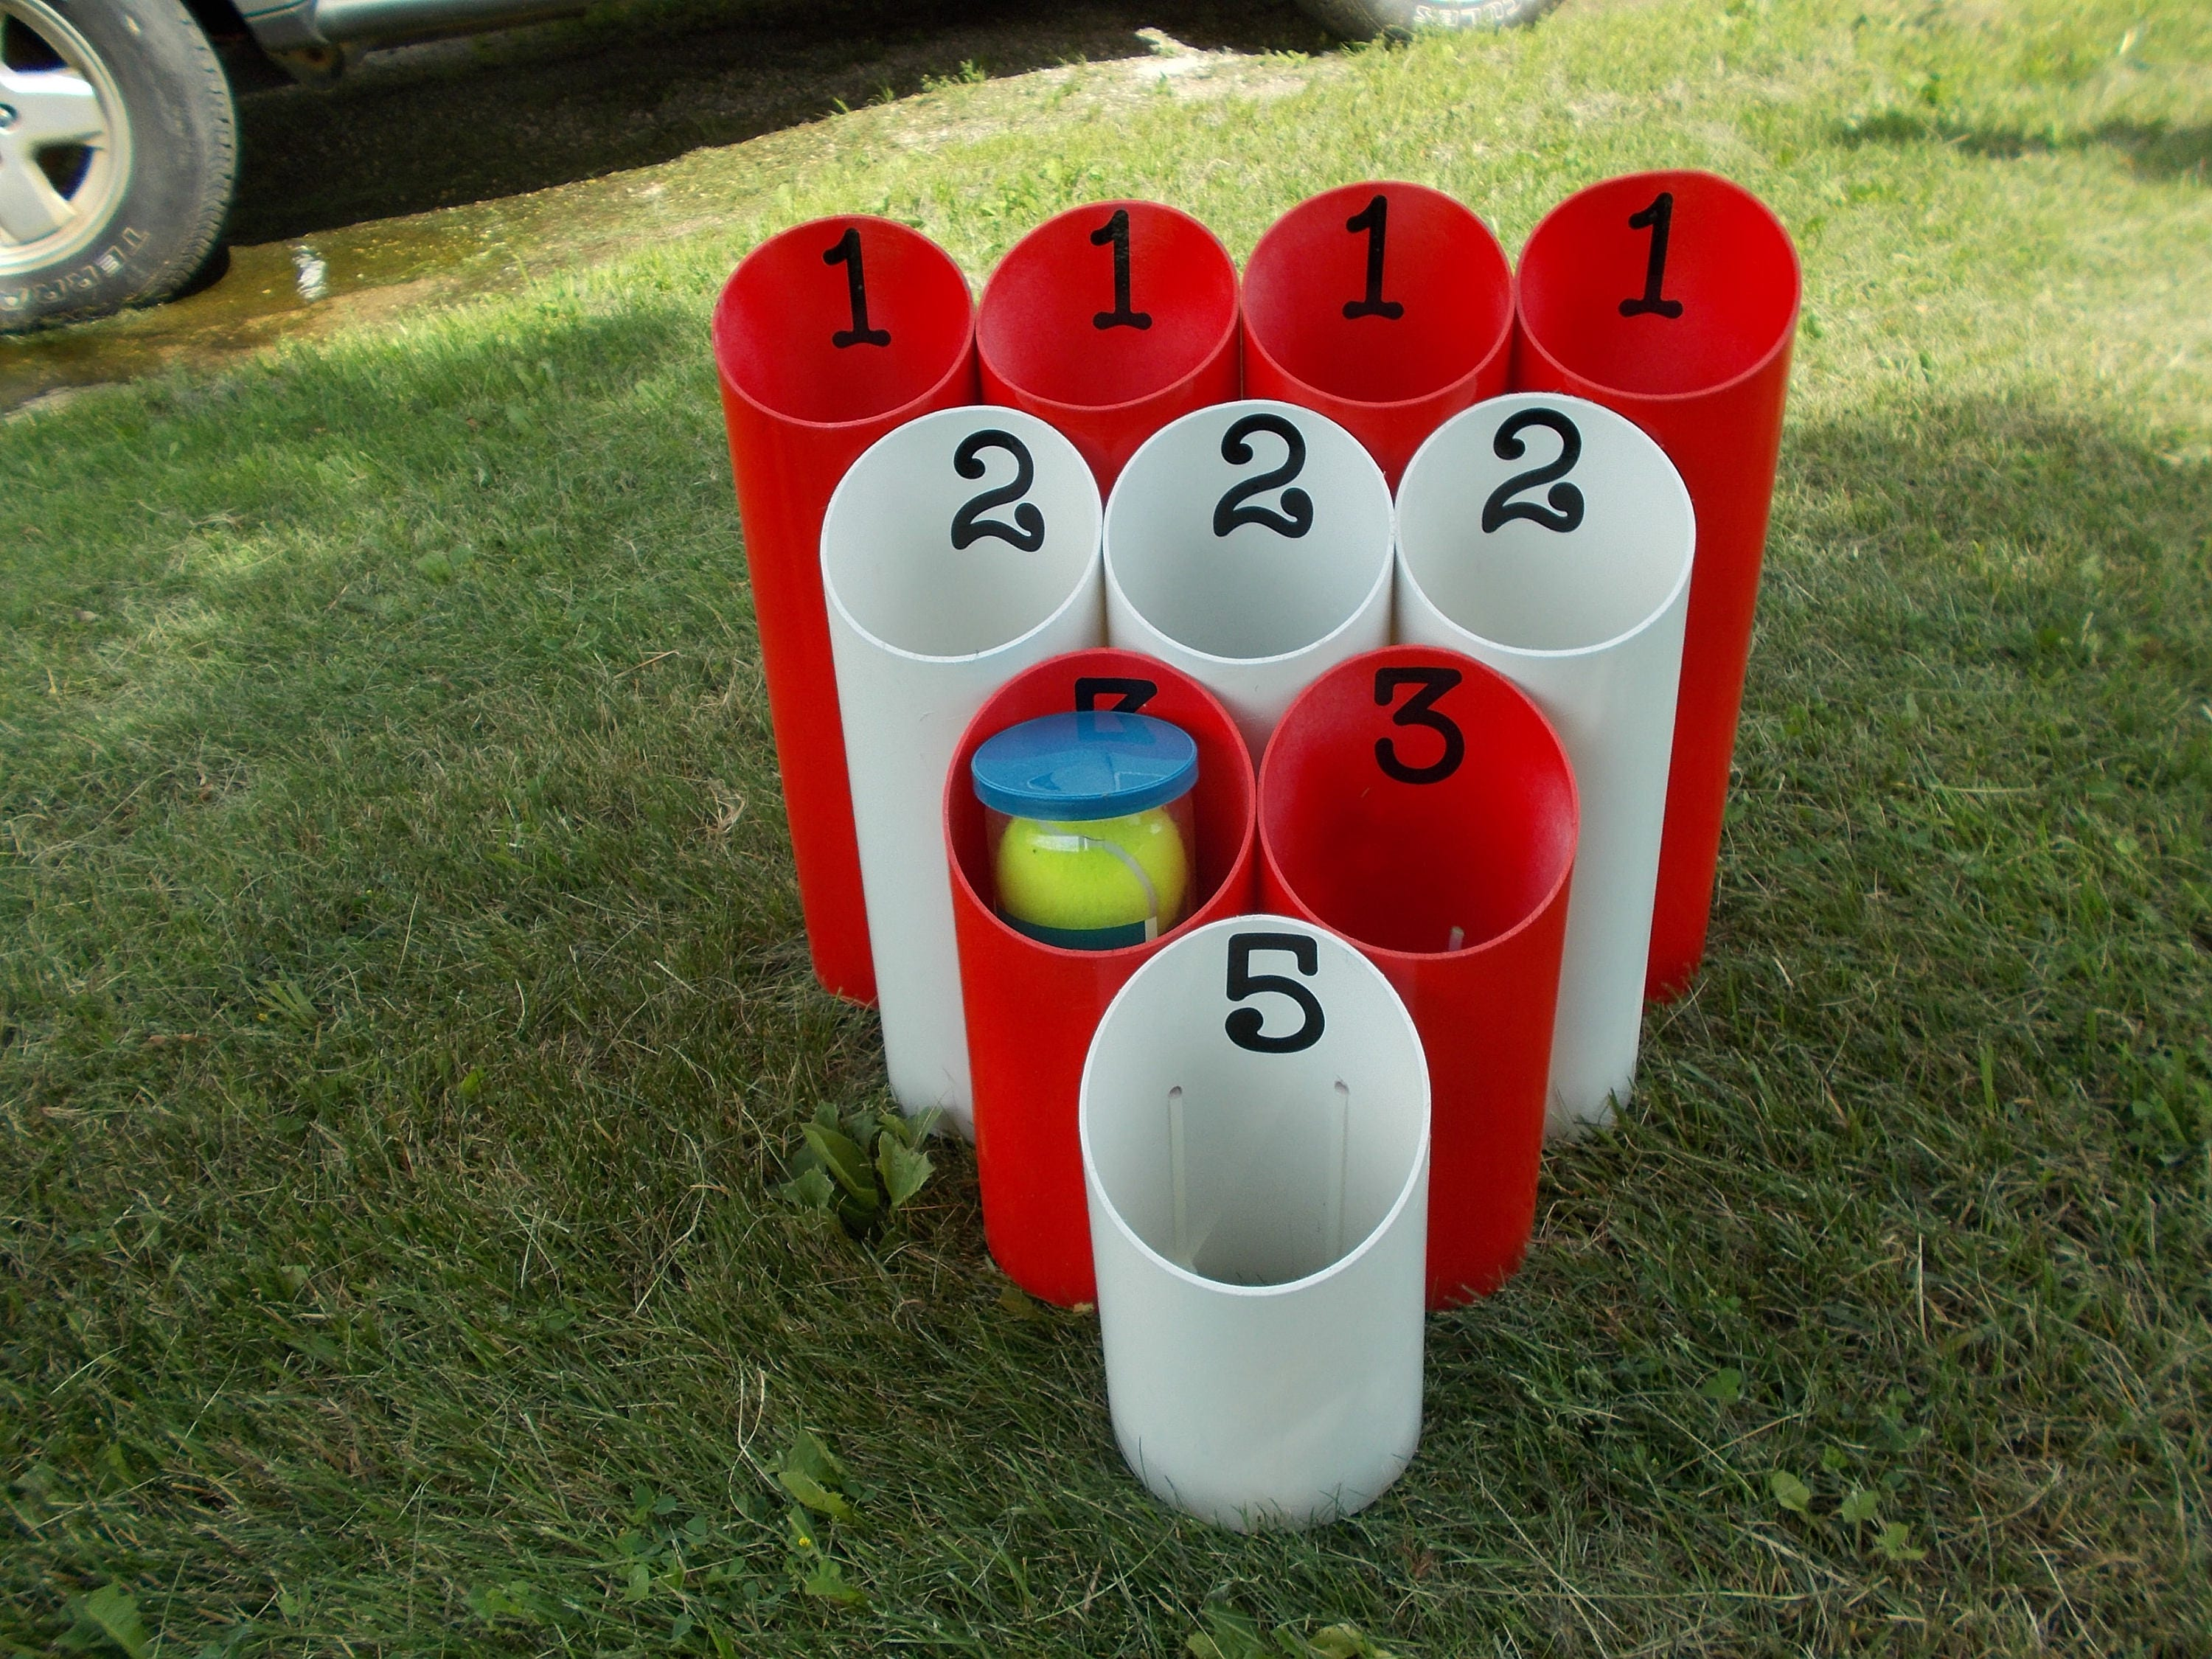 Pipe Ball Yard Game Outdoor Game Family Game Team Game Lawn